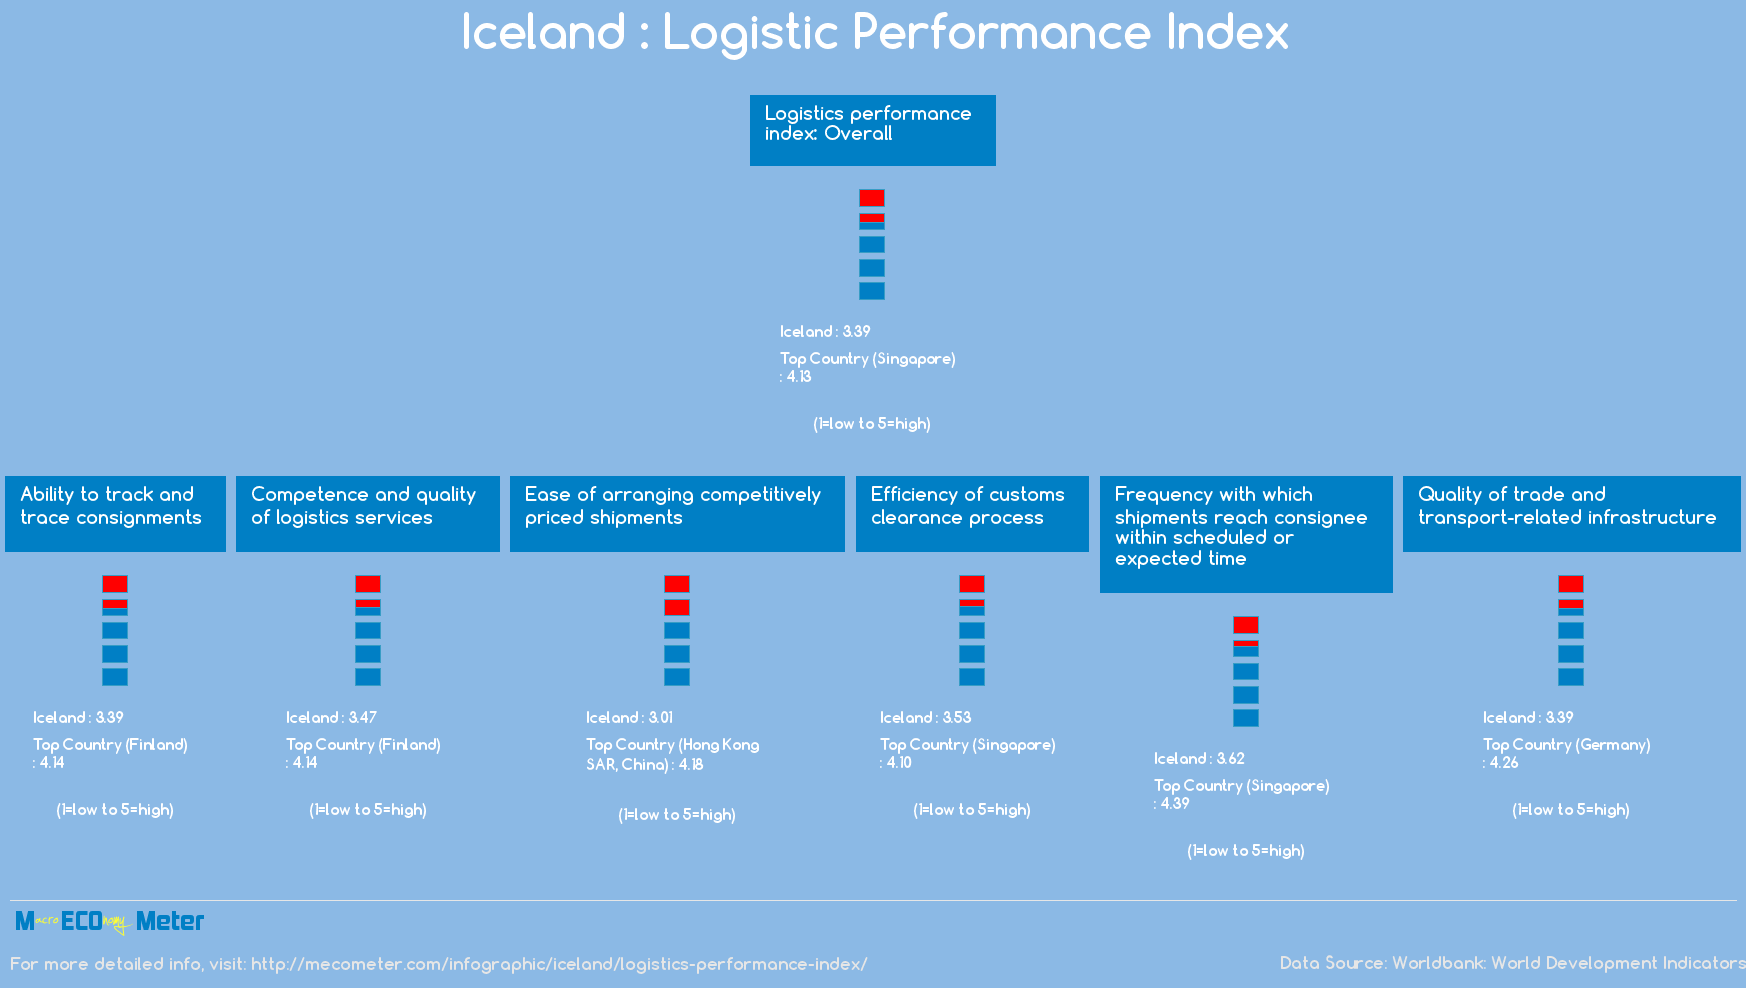 Iceland : Logistic Performance Index